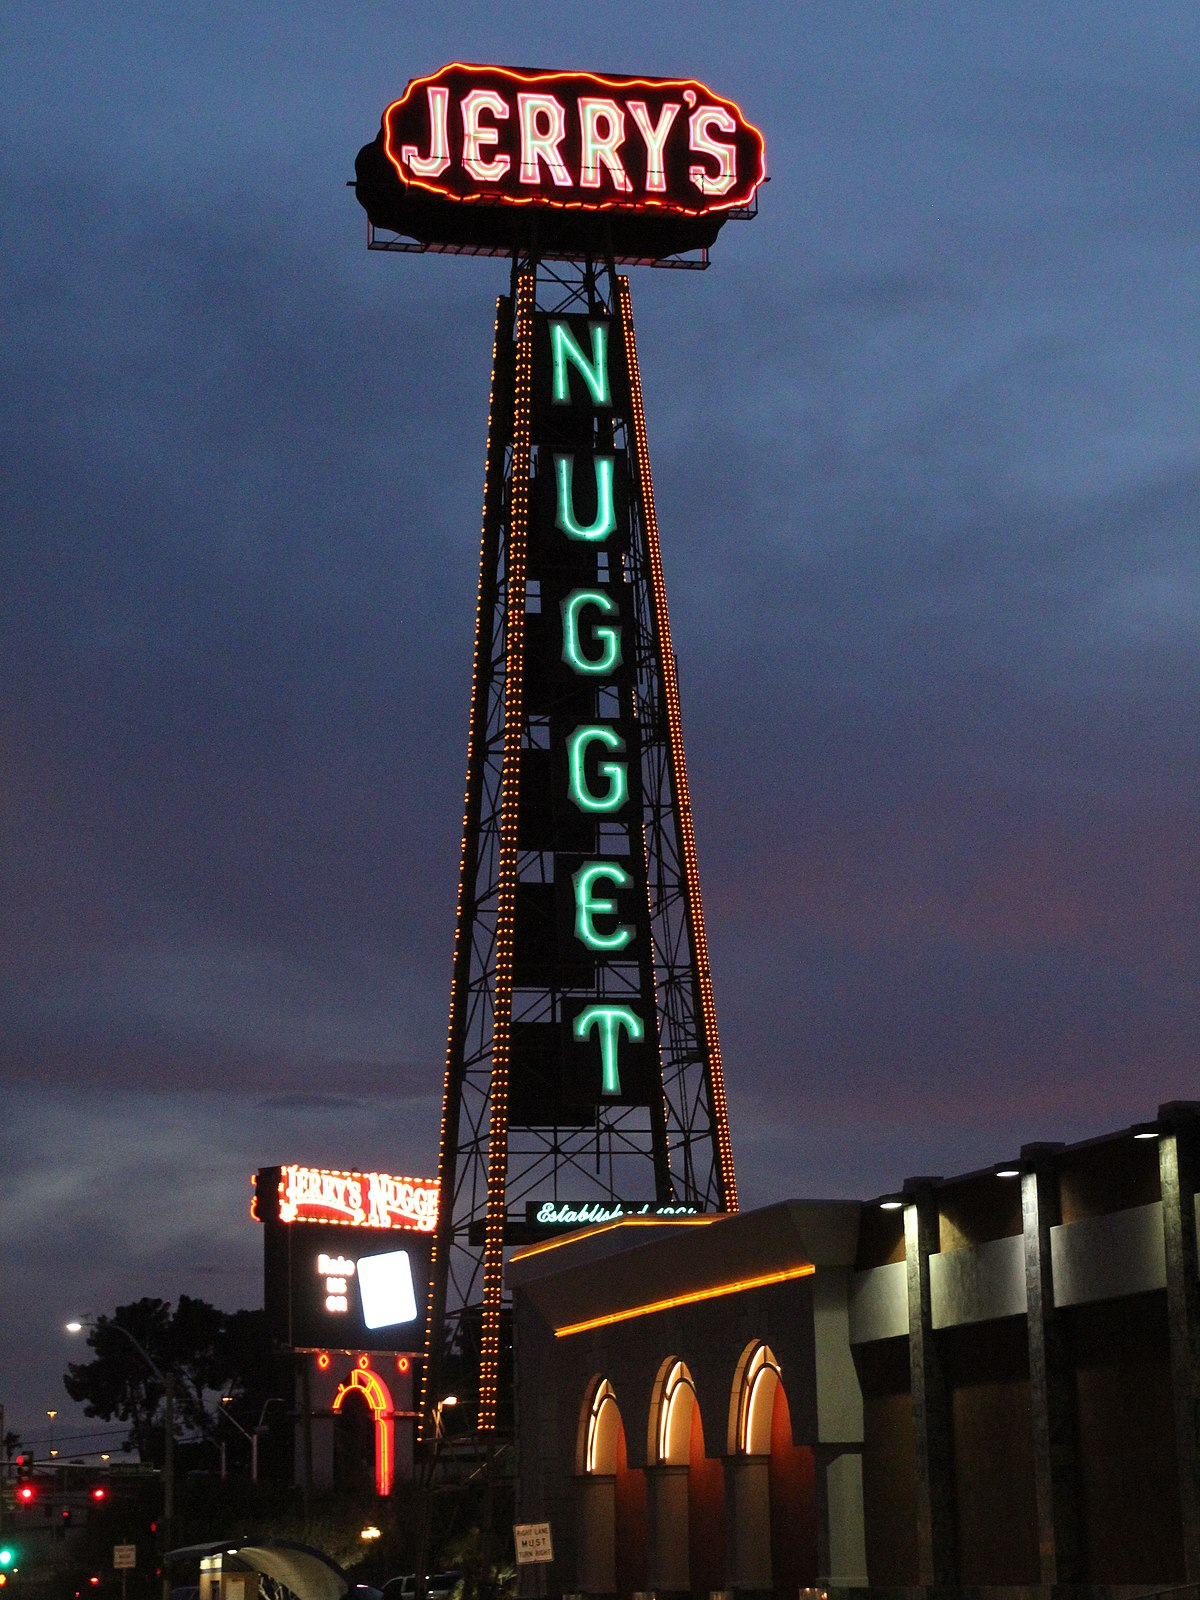 Jerry's Nugget – Wikipedia